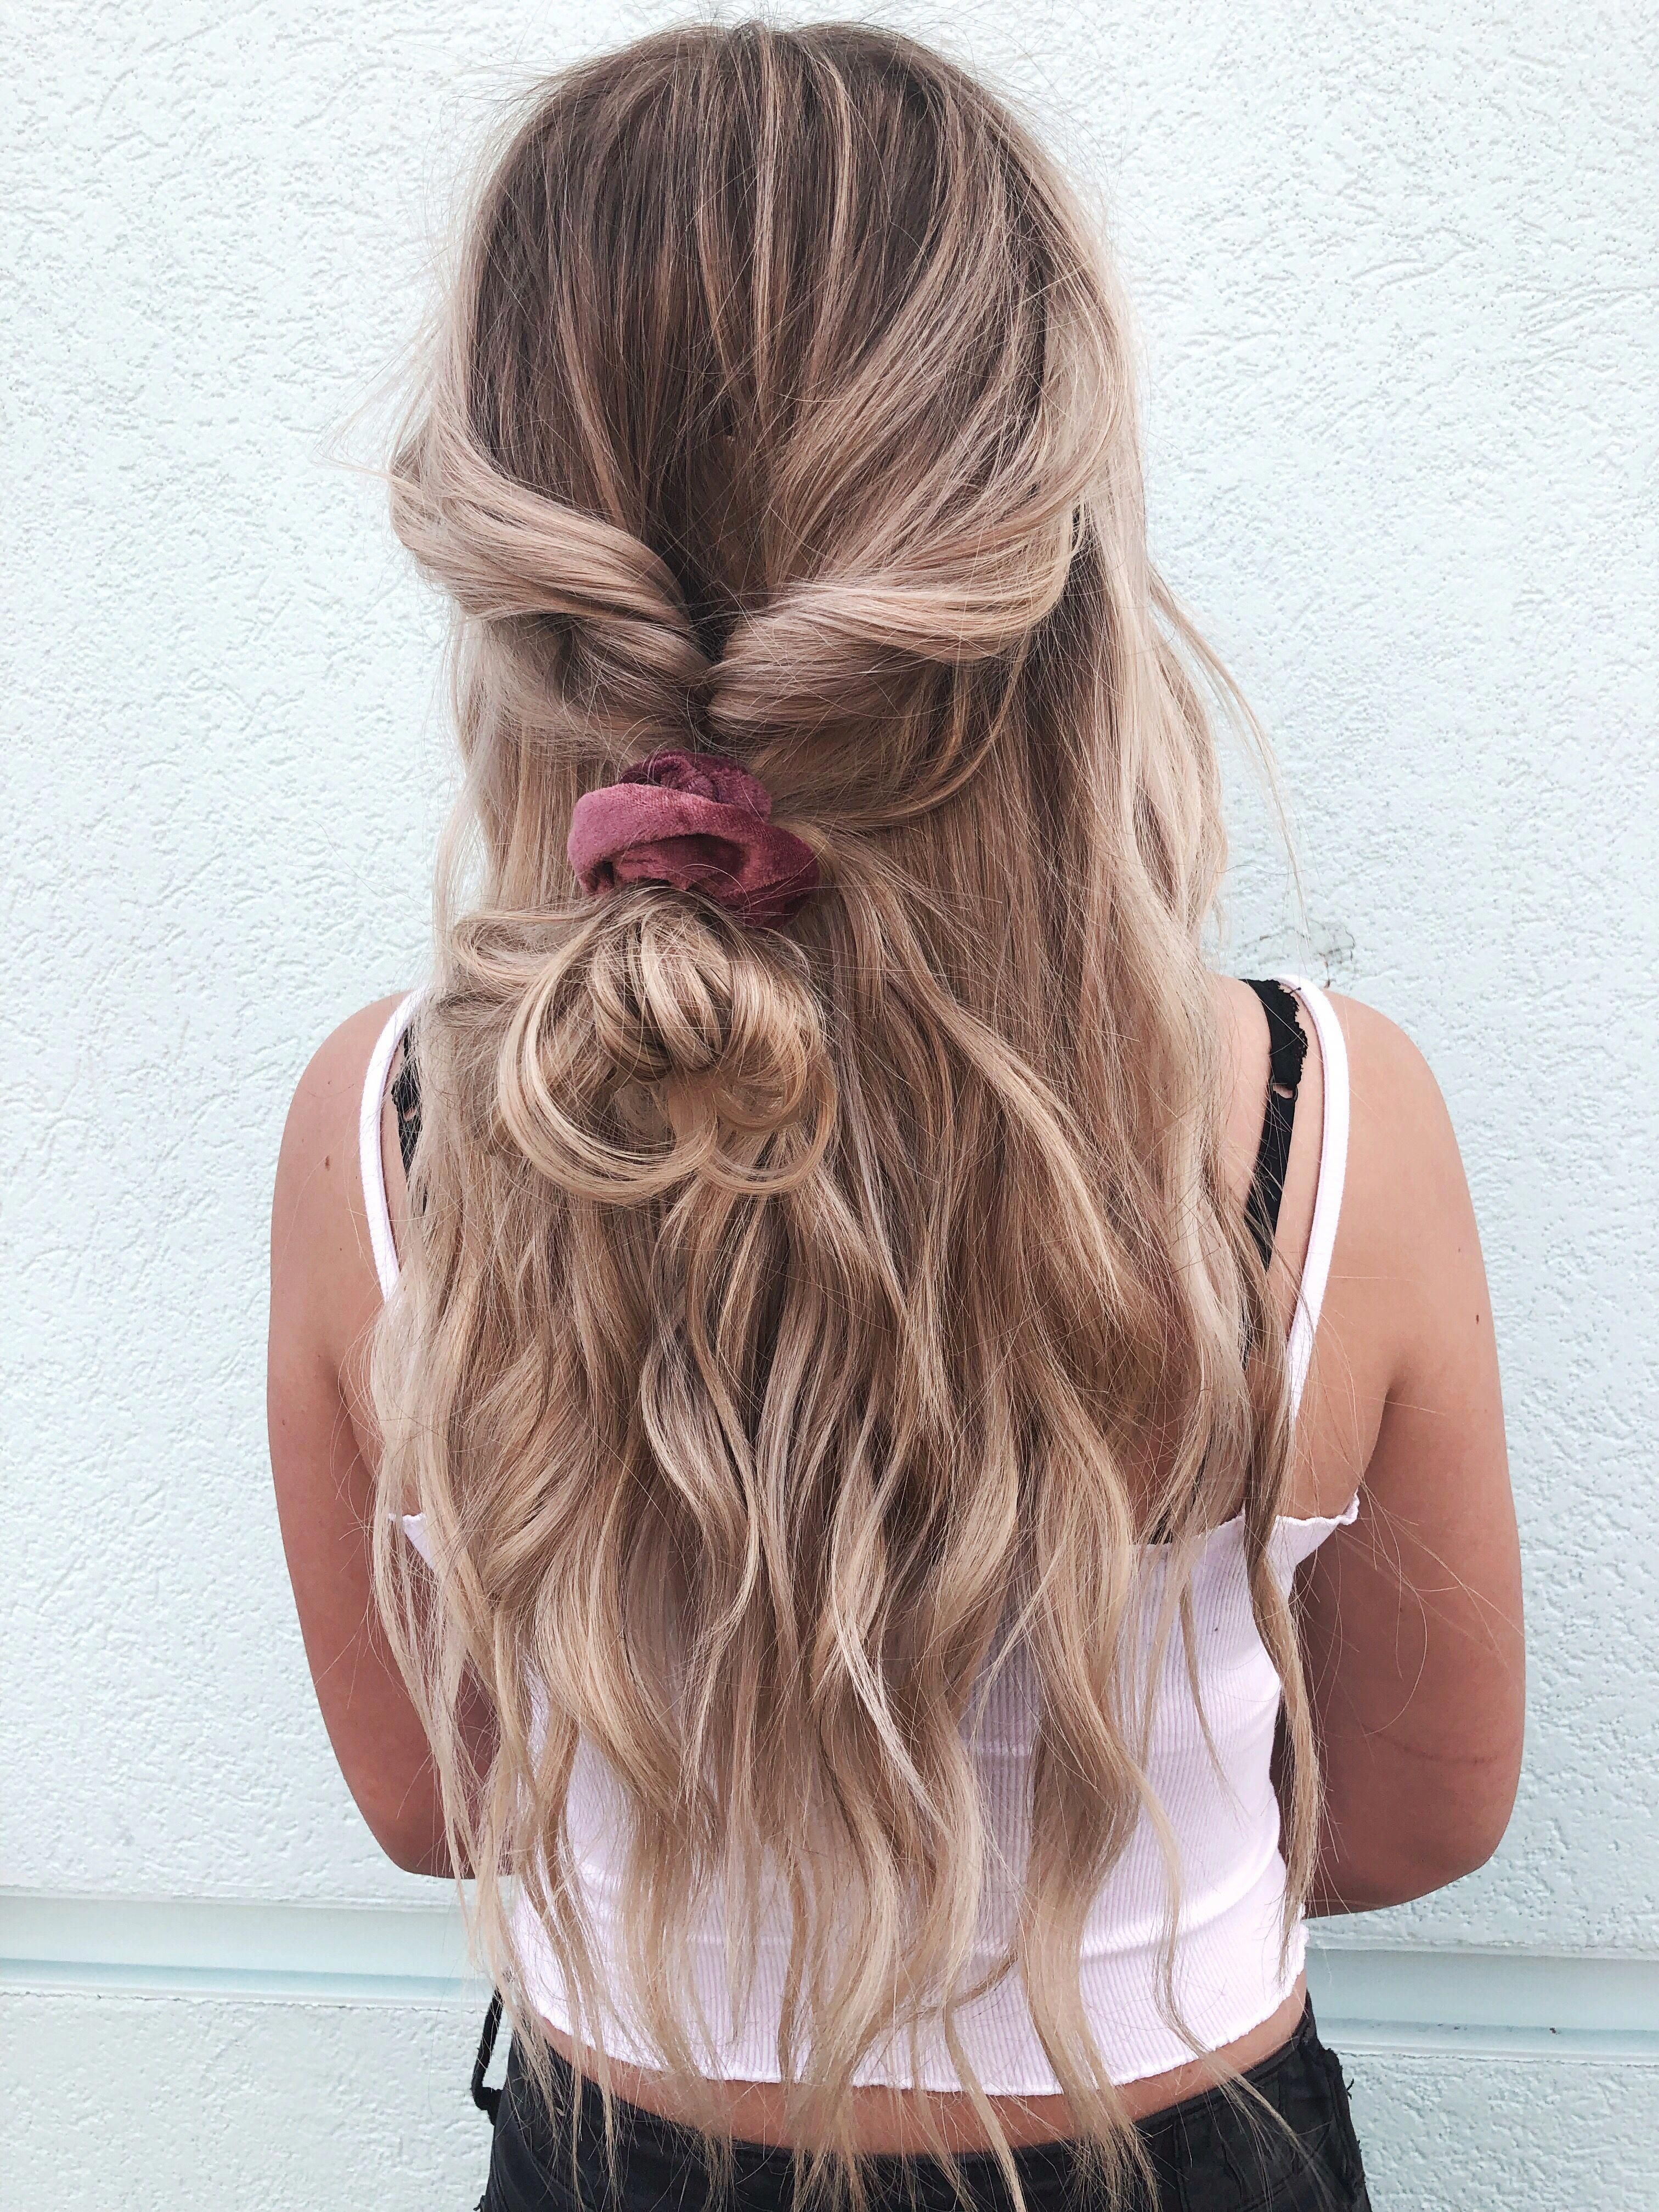 Scrunchie Hairstyle For Long Hair Fallhairstylesforlonghair Hair in 2020 |  Fall hair, Long hair styles, Scrunchie hairstyles